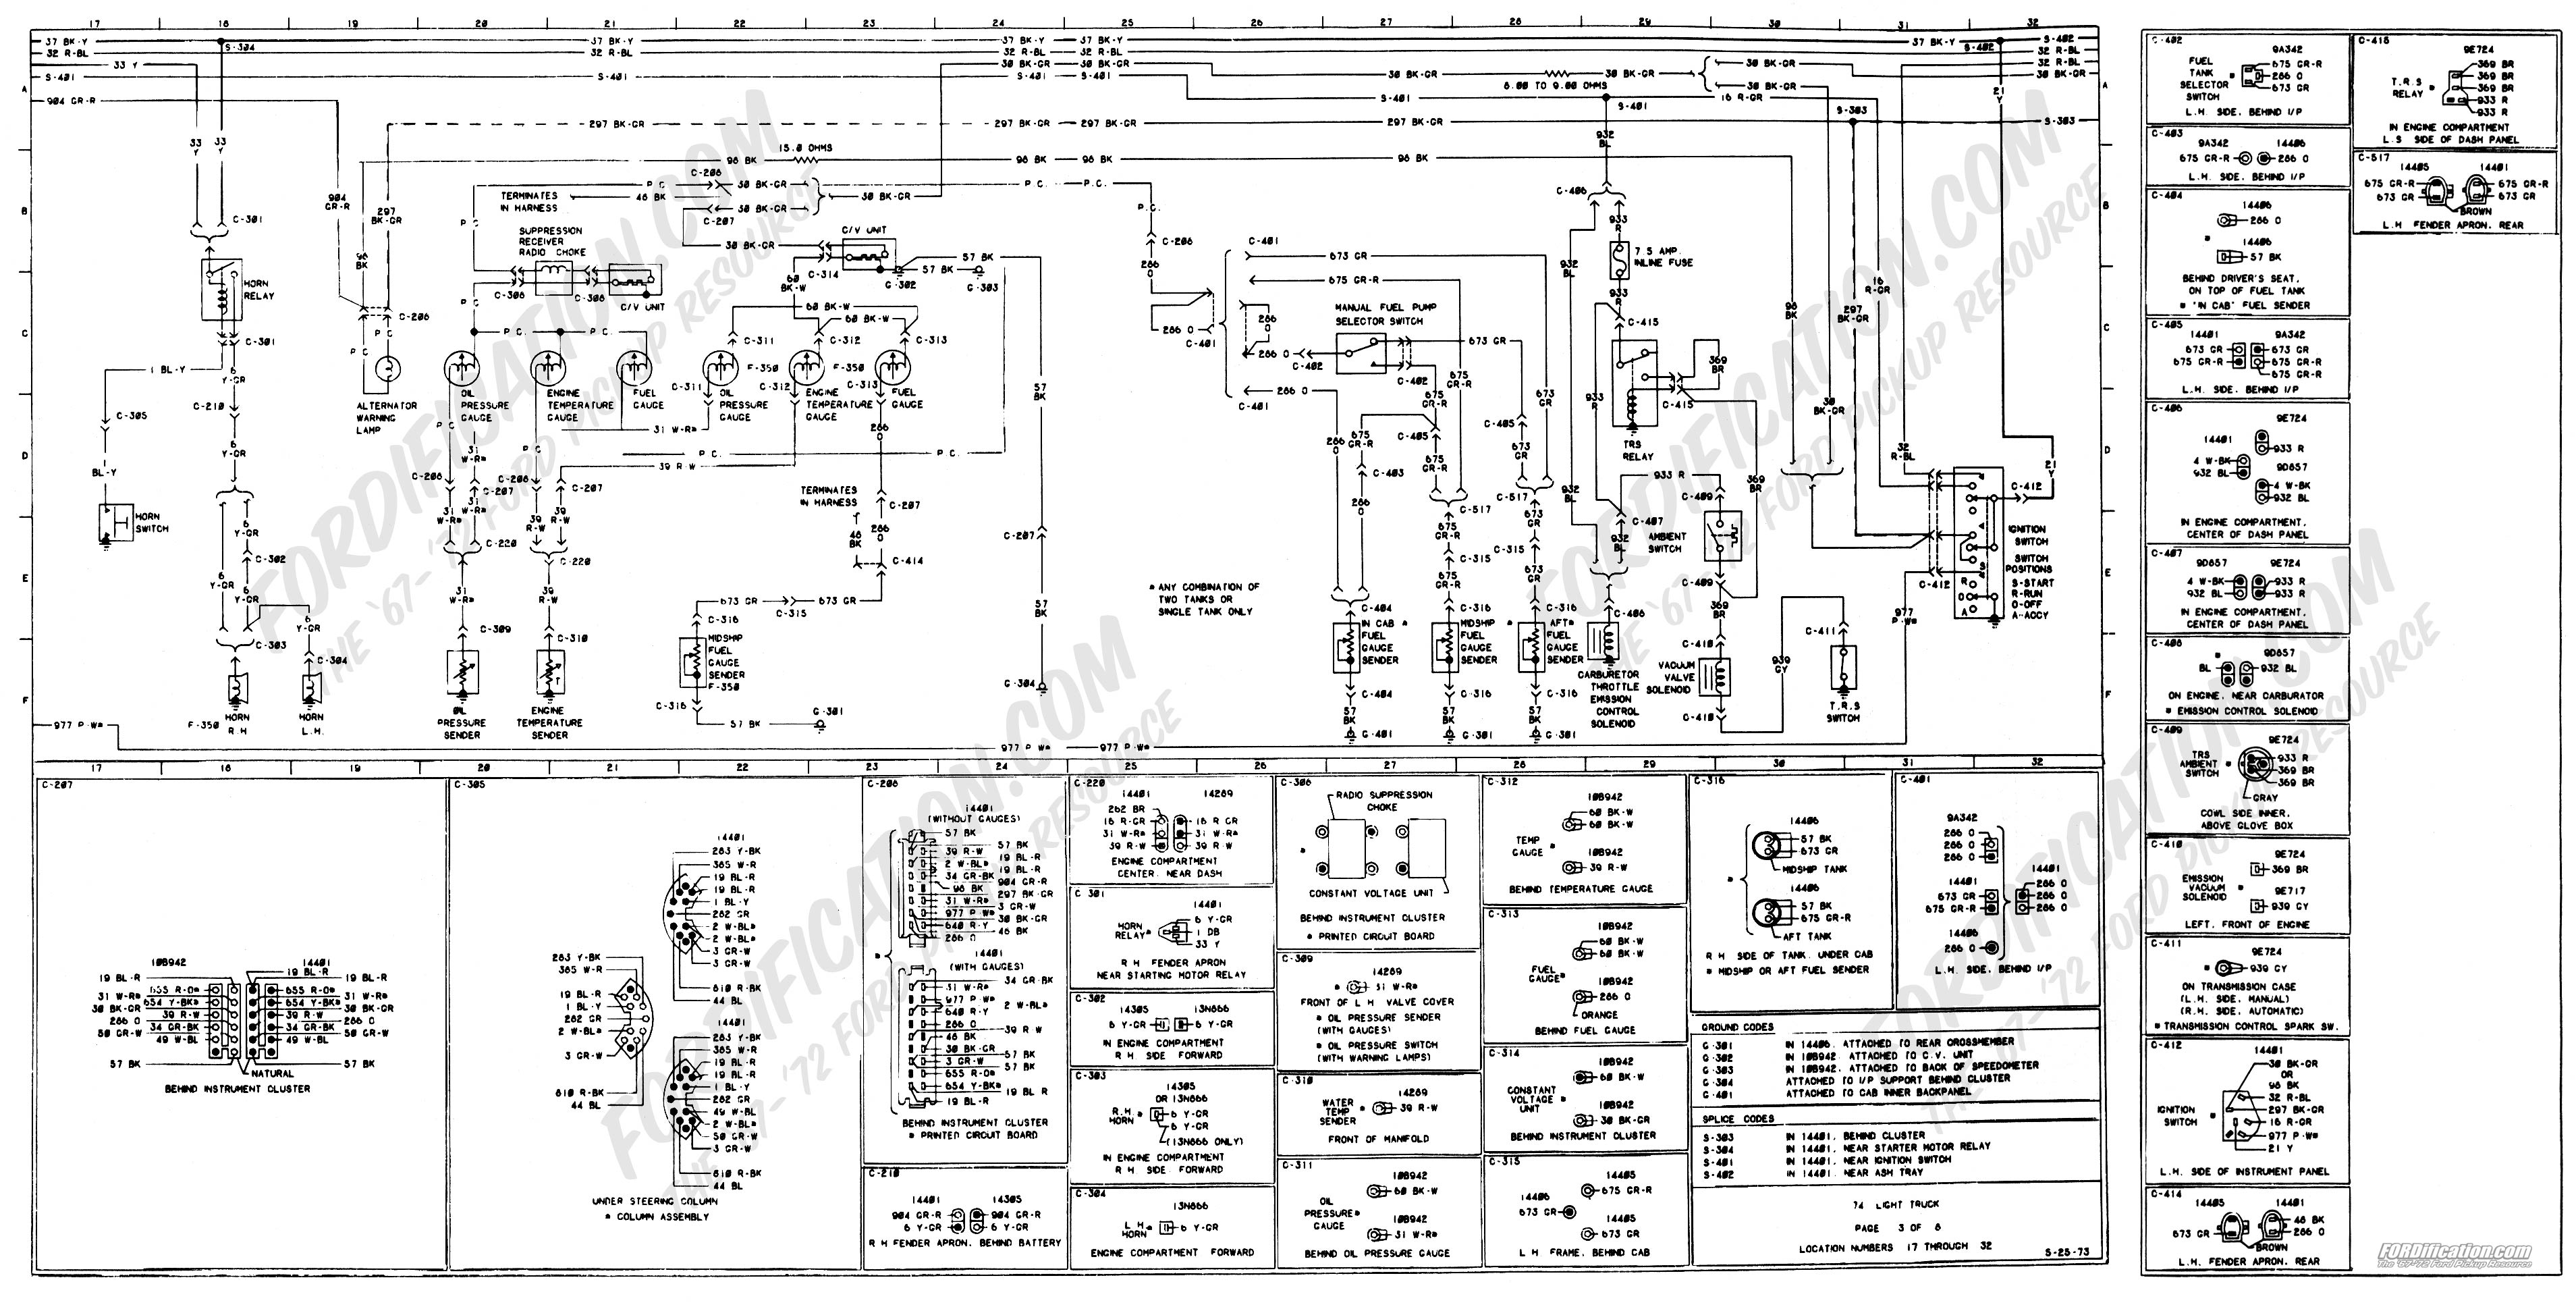 Alternator Wiring Diagram For 2002 F250 Reveolution Of 2000 Ford F 250 Truck Trusted Schematics Rh Propeller Sf Com 99 04